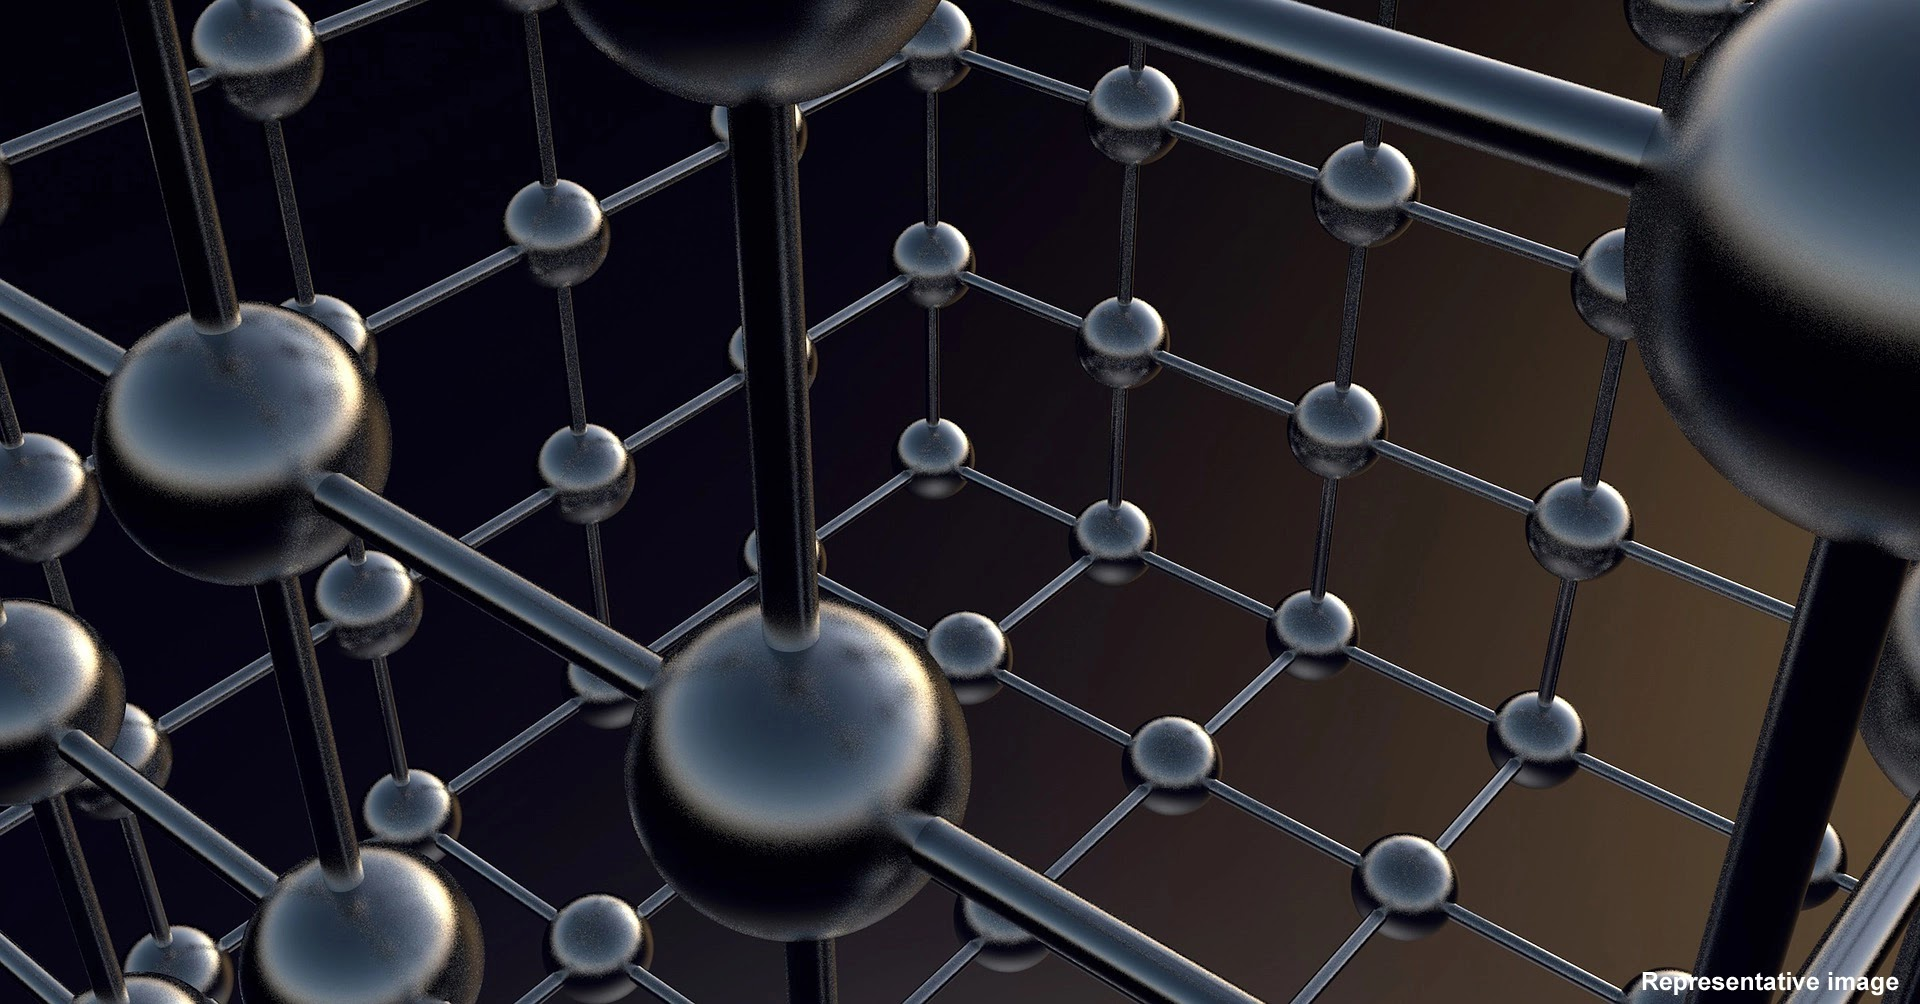 Researchers From Tel Aviv University Have Developed The World's Thinnest Technology ― Only Two Atoms Thick